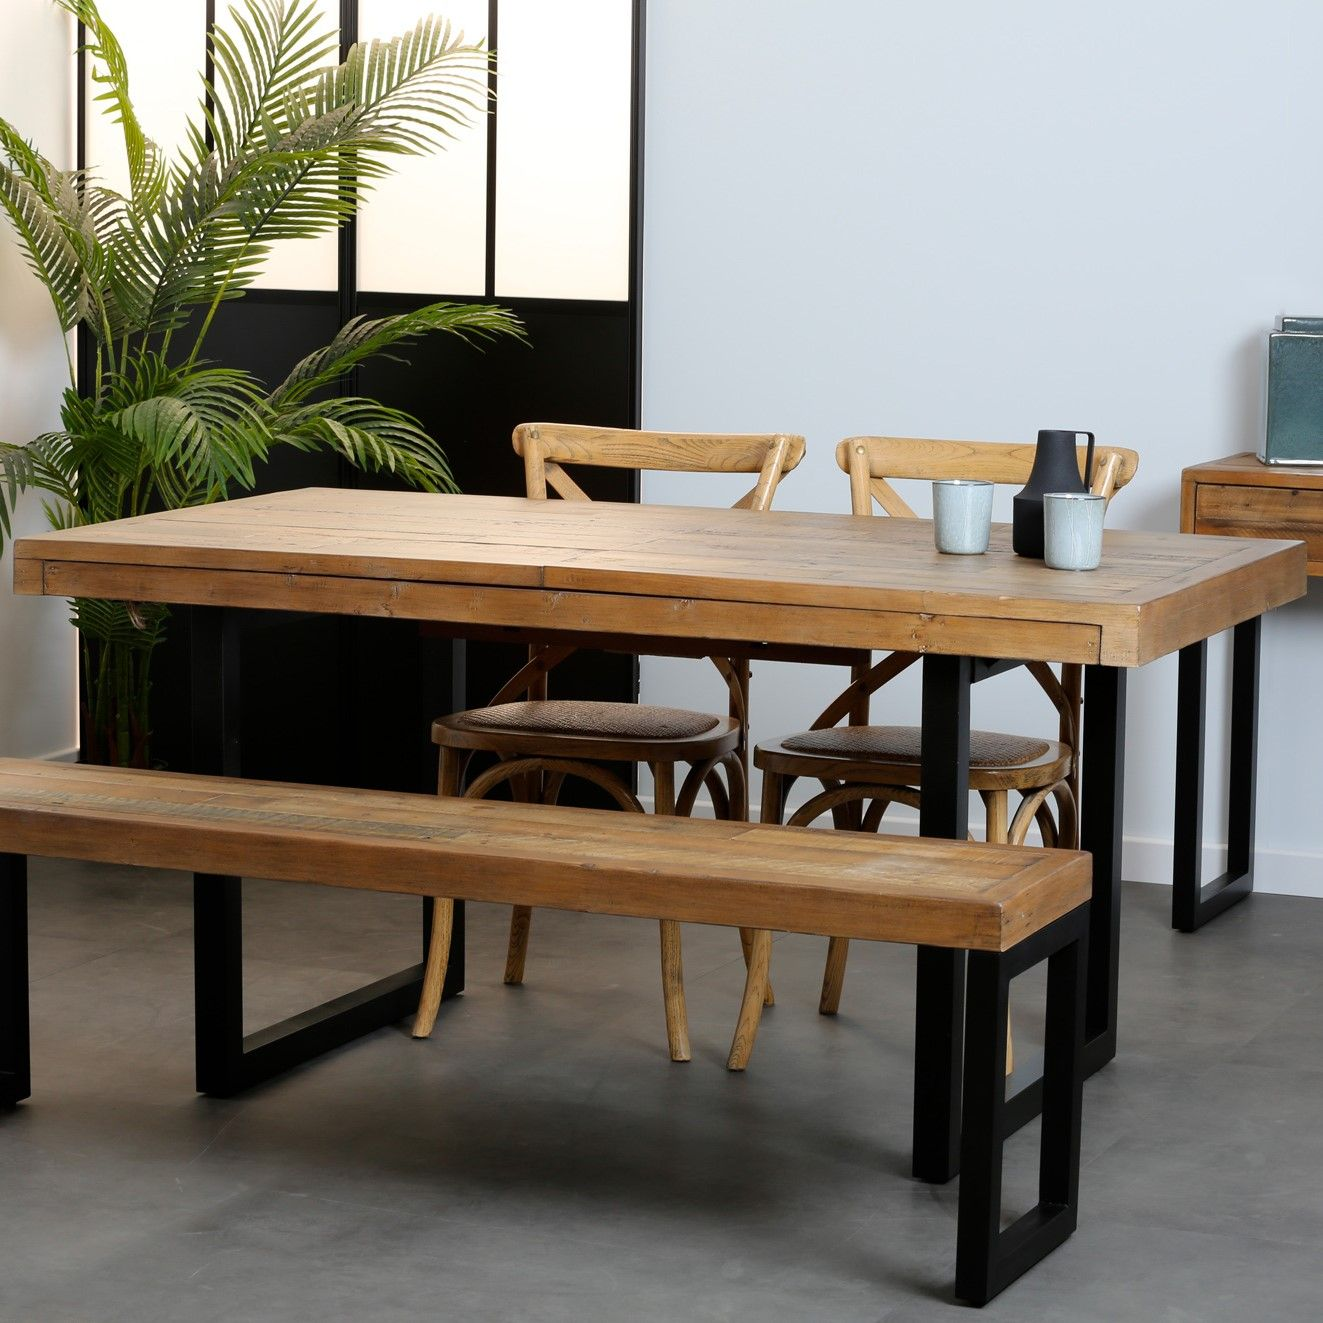 Table A Manger Extensible Bois Recycle 160 200 Cm Brisbane Table A Manger Extensible Meuble Salle A Manger Table Salle A Manger